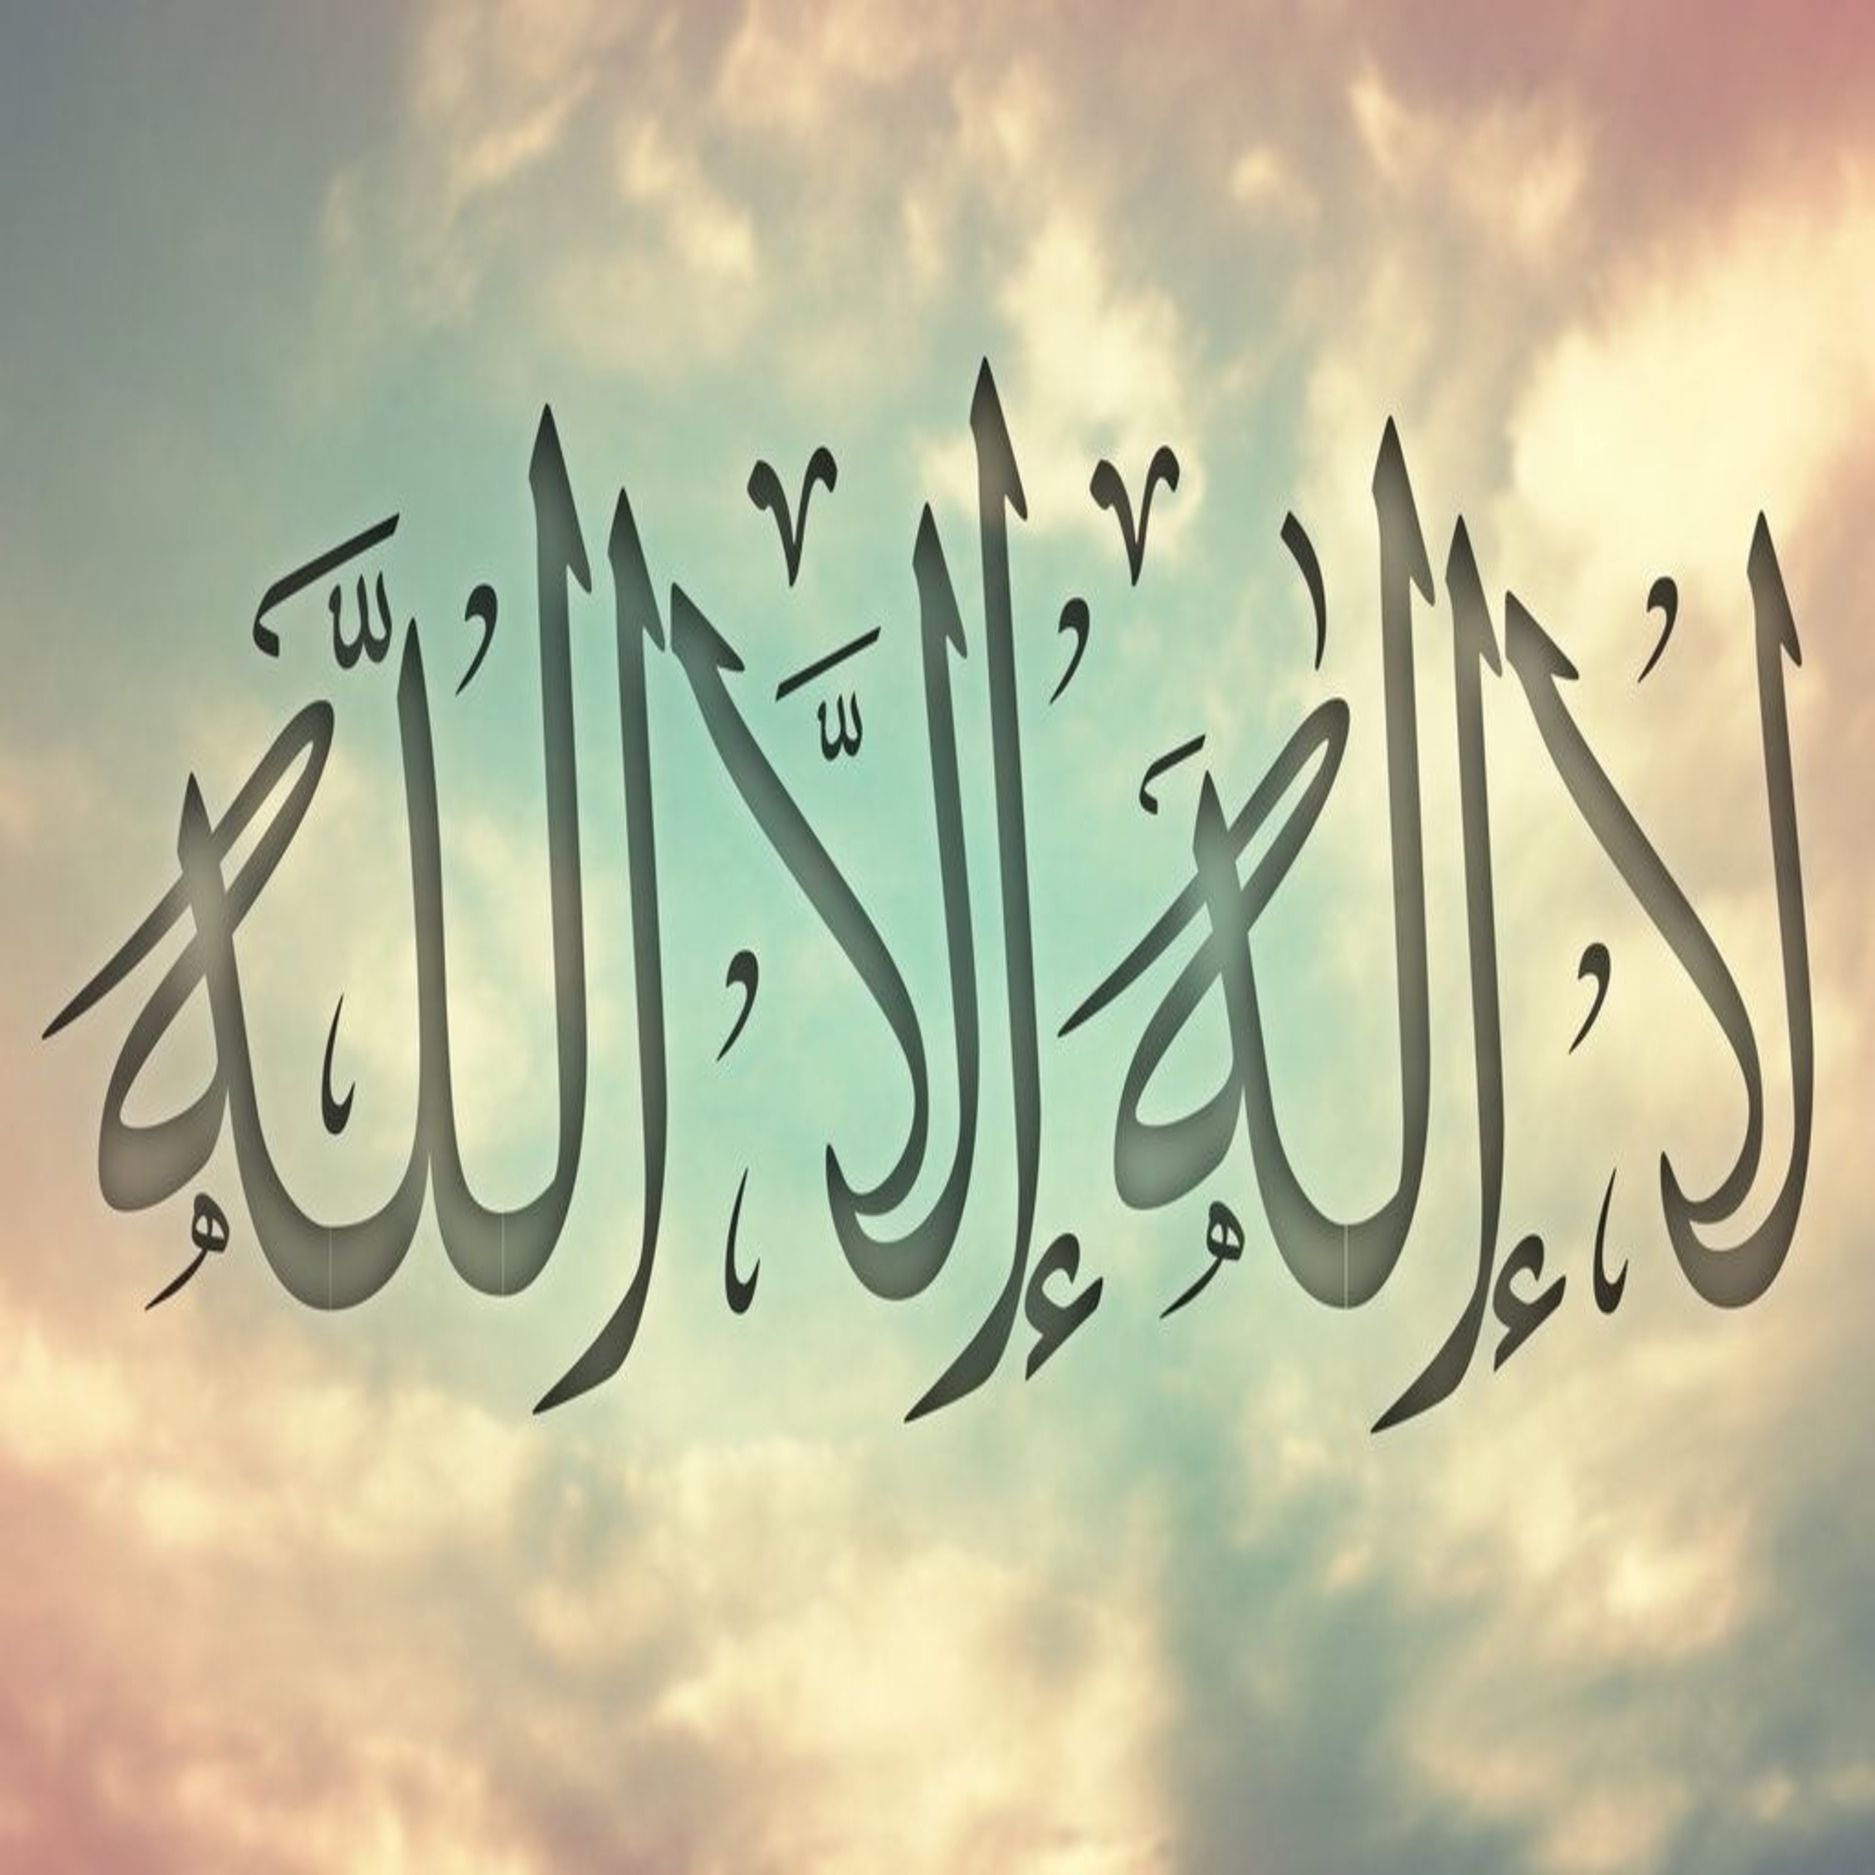 Monotheism (Tawheed) in Quran